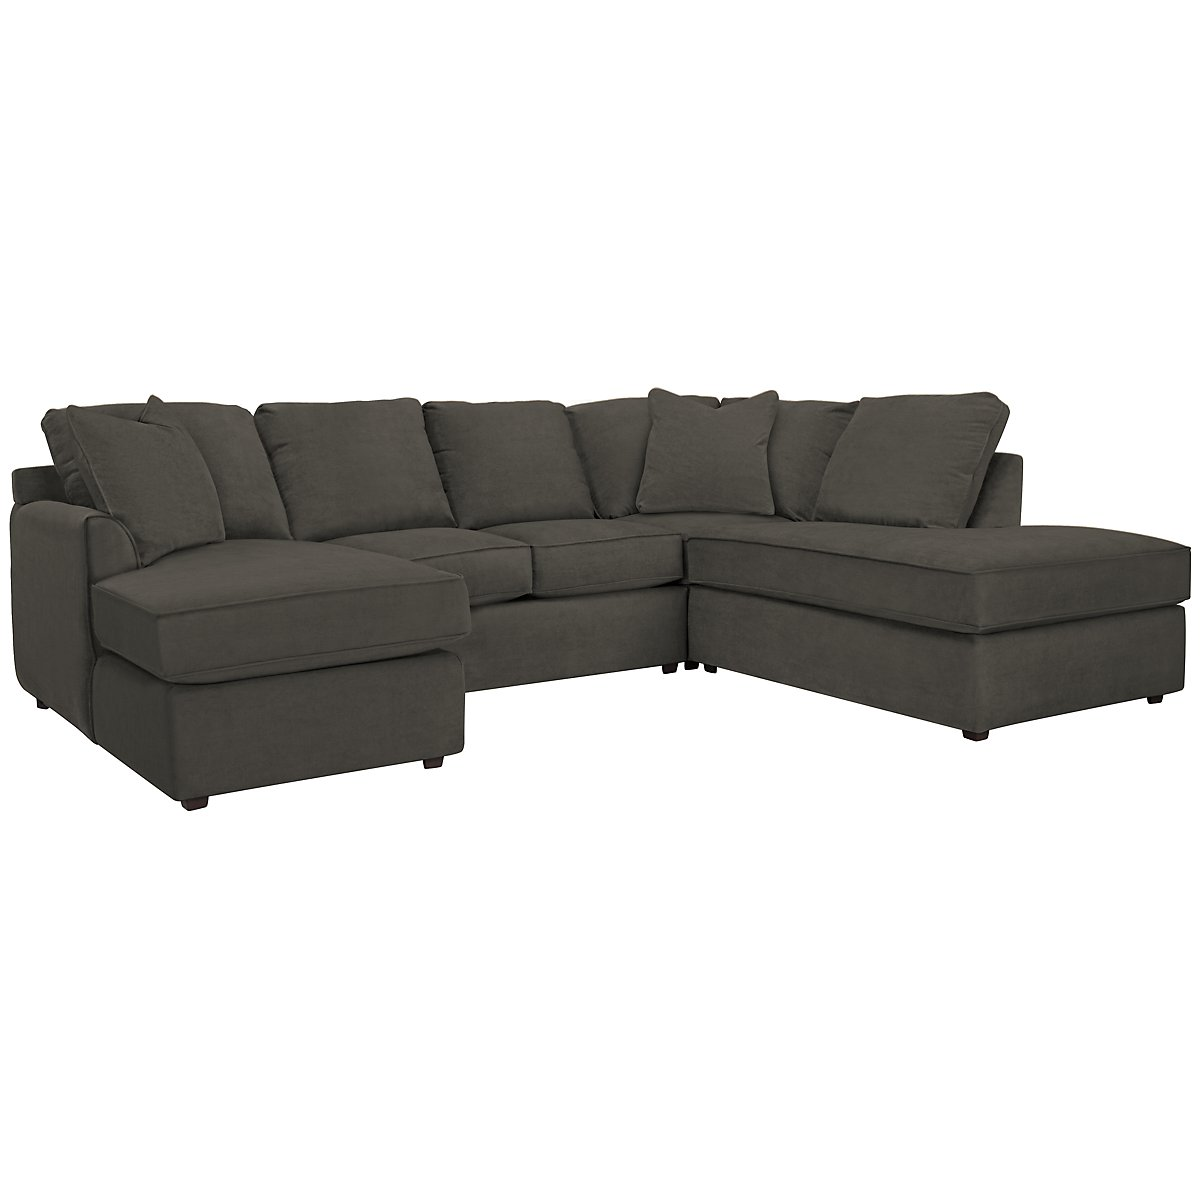 Express3 Dk Gray Microfiber Small Right Bumper Sectional